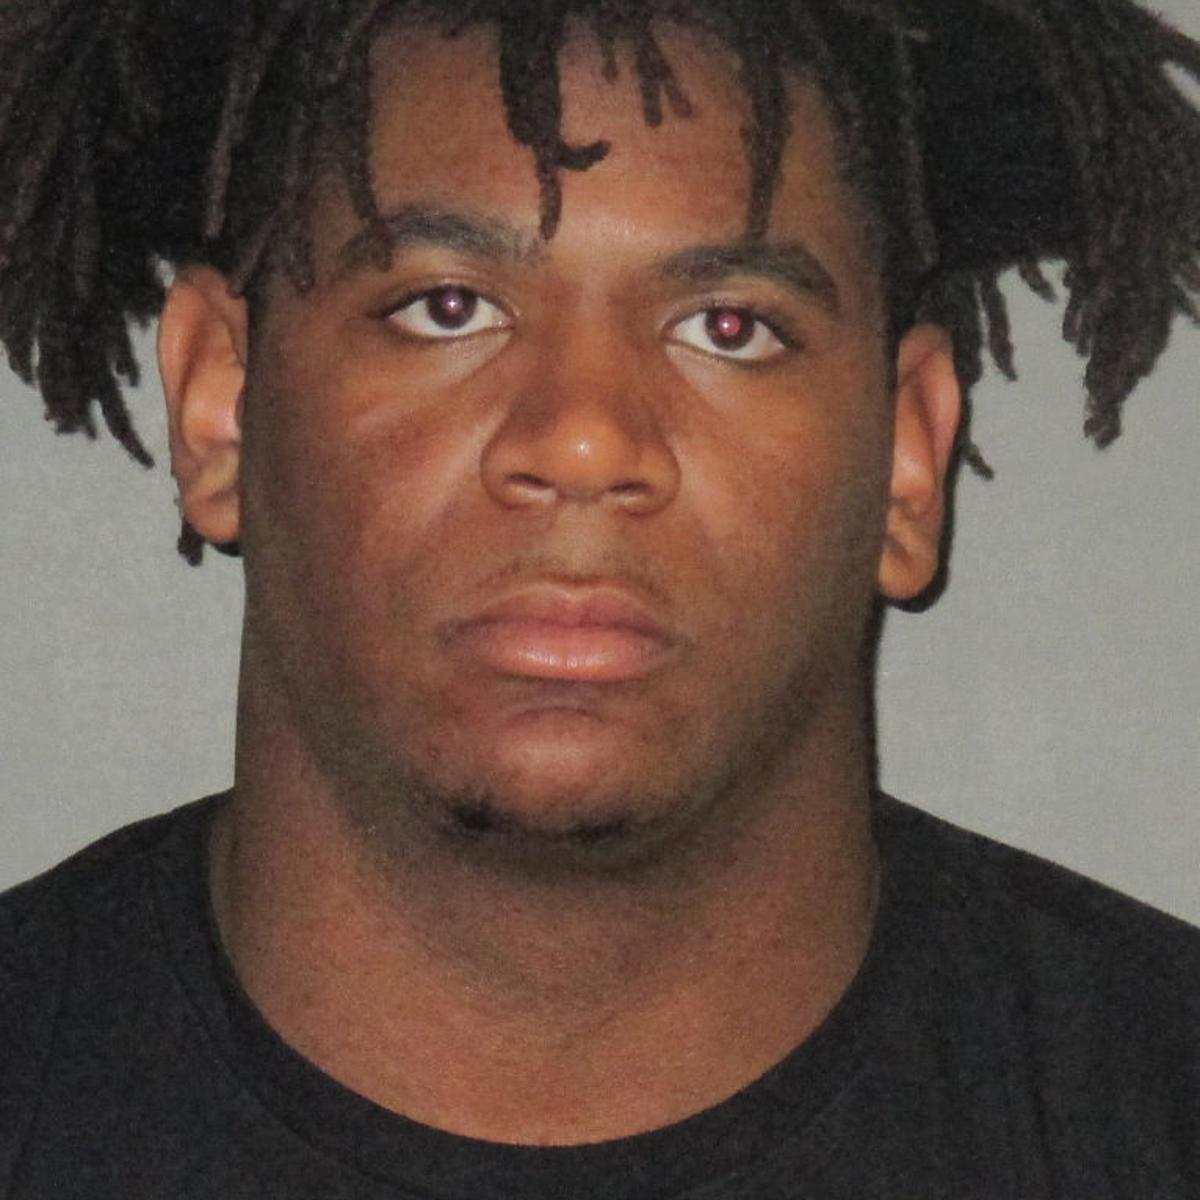 LSU offensive lineman Adrian Magee arrested on burglary after